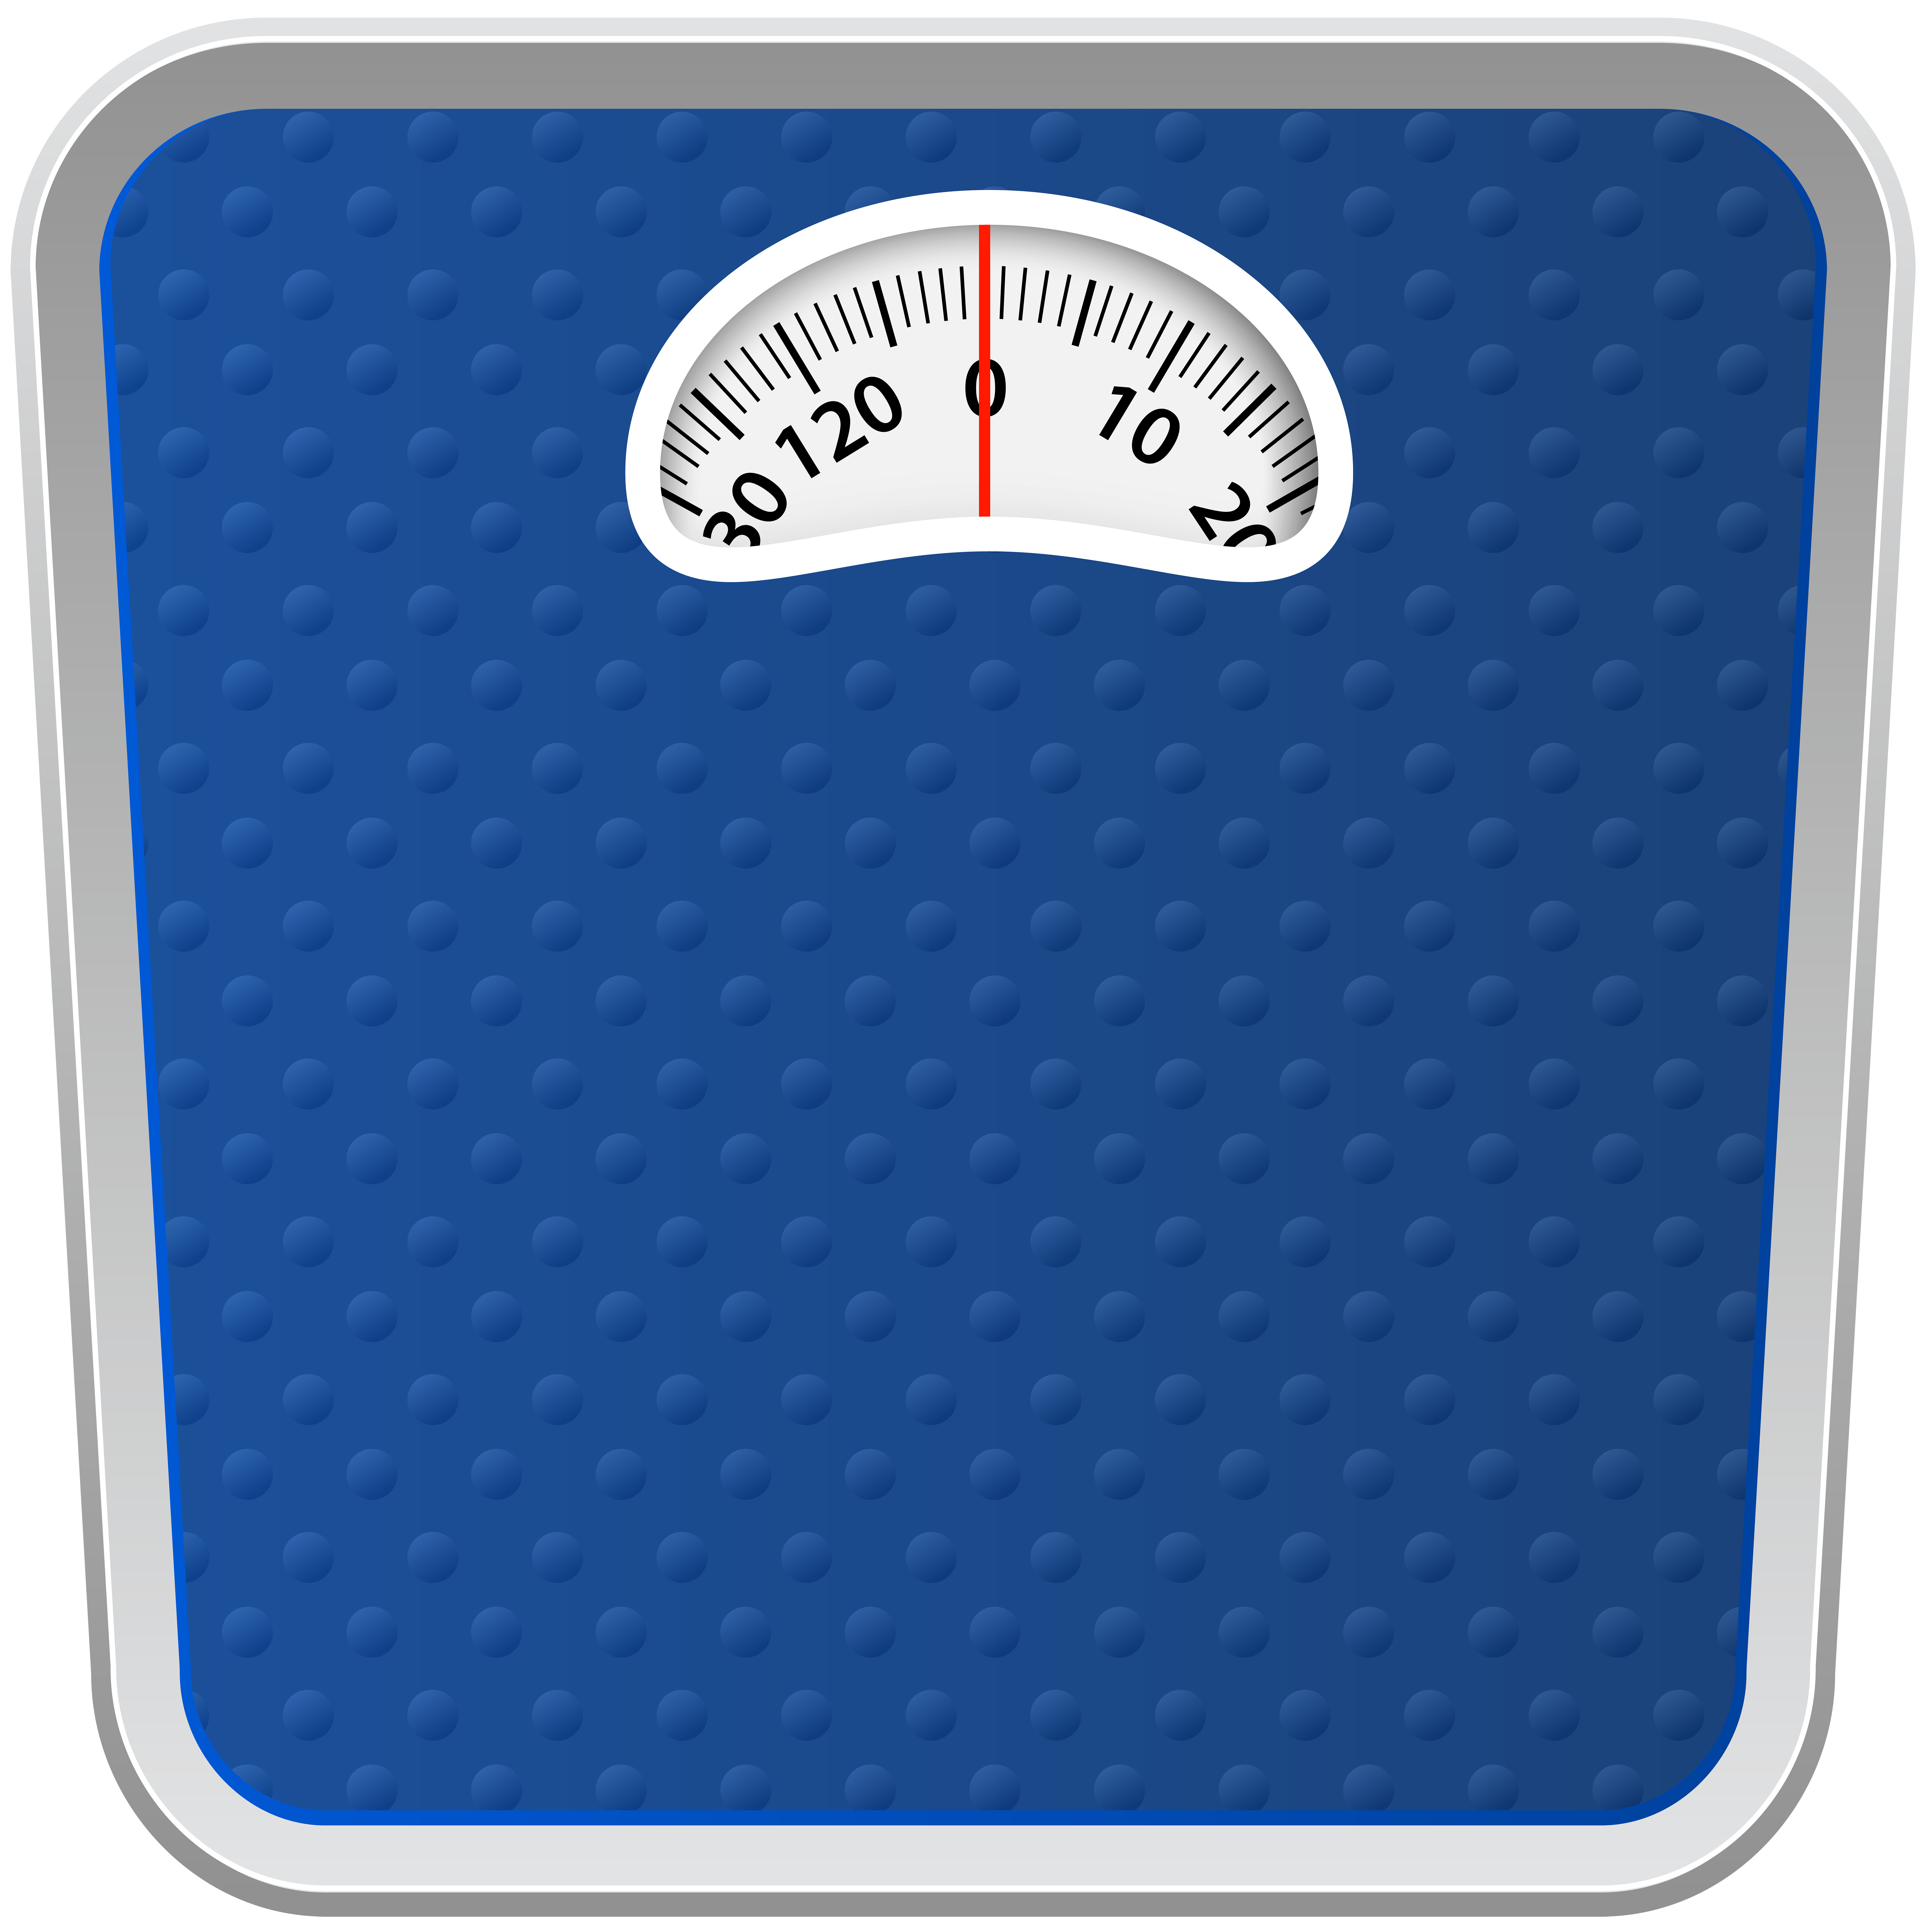 Weighing Scale Transparent Clip Art.